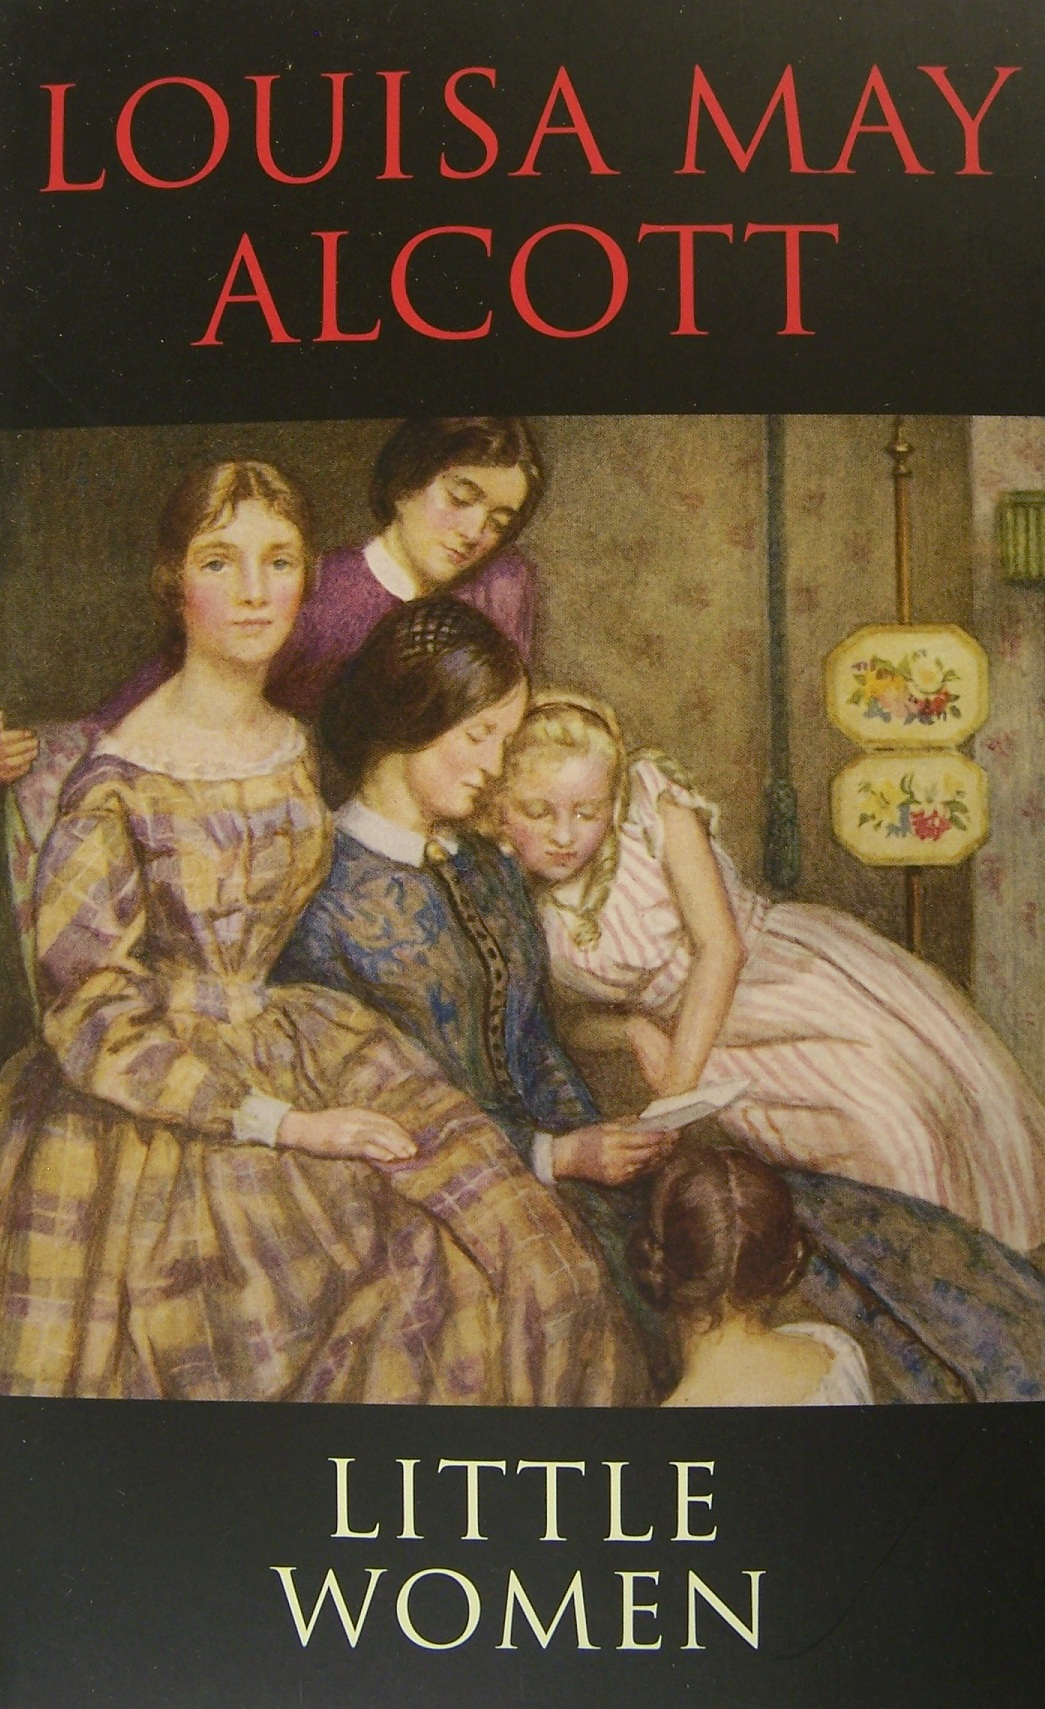 an analysis of the book little women by louisa may alcott Little women louisa may alcott for a good picture or two hung on the walls, books filled the recesses little women mother.